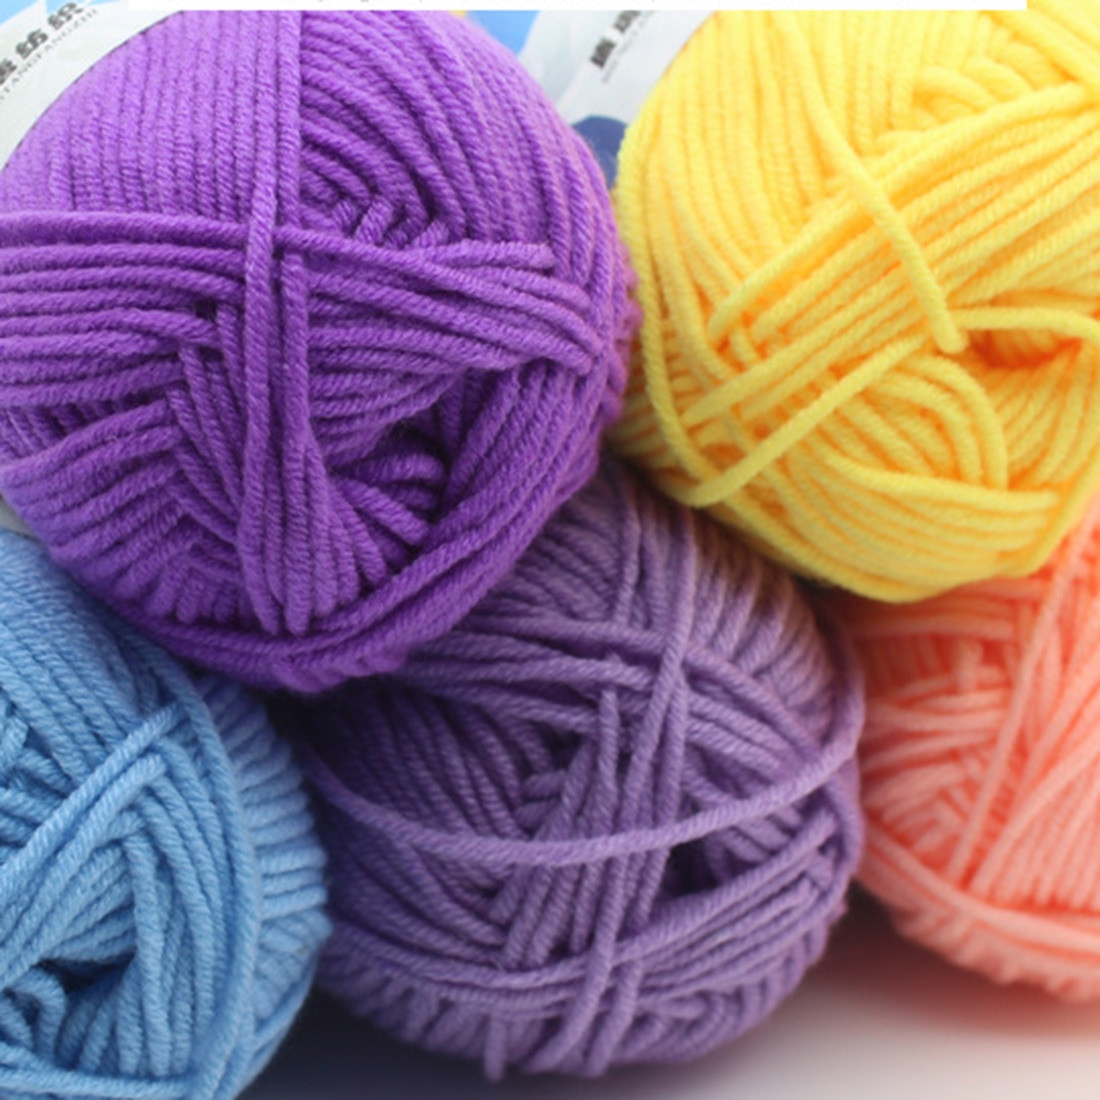 Cotton Knit Best Of Line Buy wholesale Crochet Yarn From China Crochet Yarn Of Marvelous 41 Ideas Cotton Knit